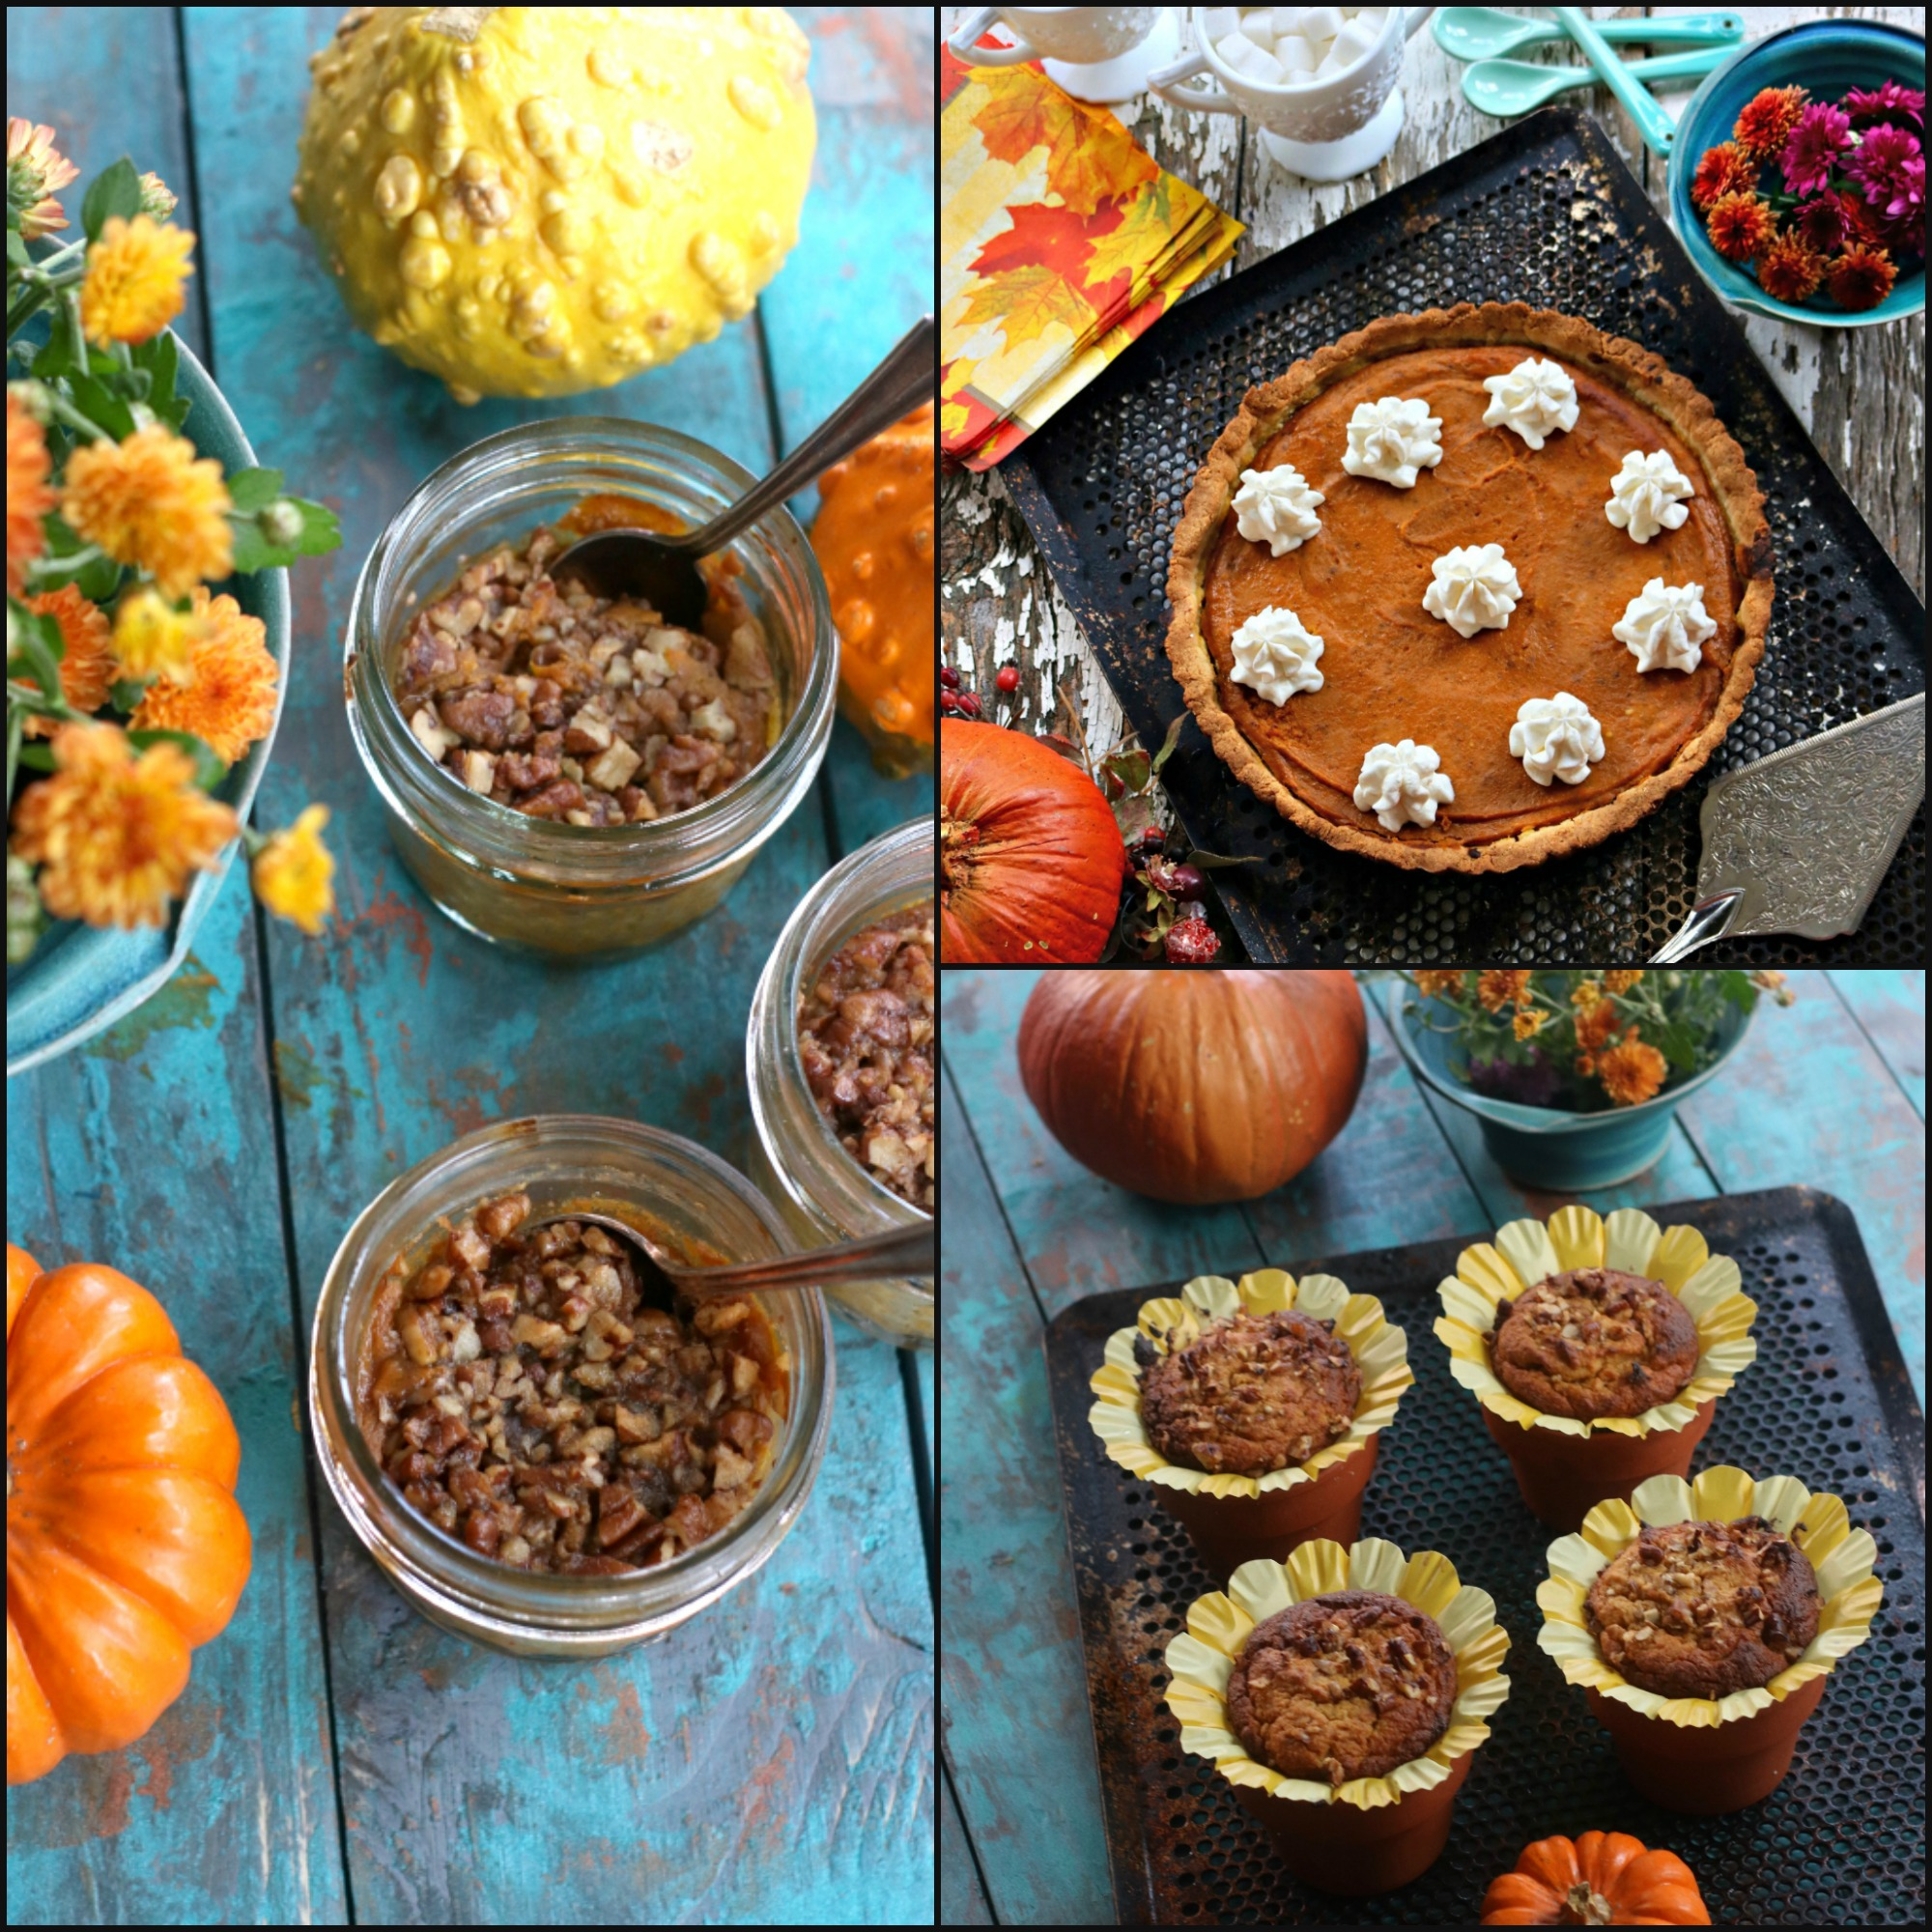 Desserts for Keto Thanksgiving, Low Carb, Grain Free, Sugar Free , Gluten free